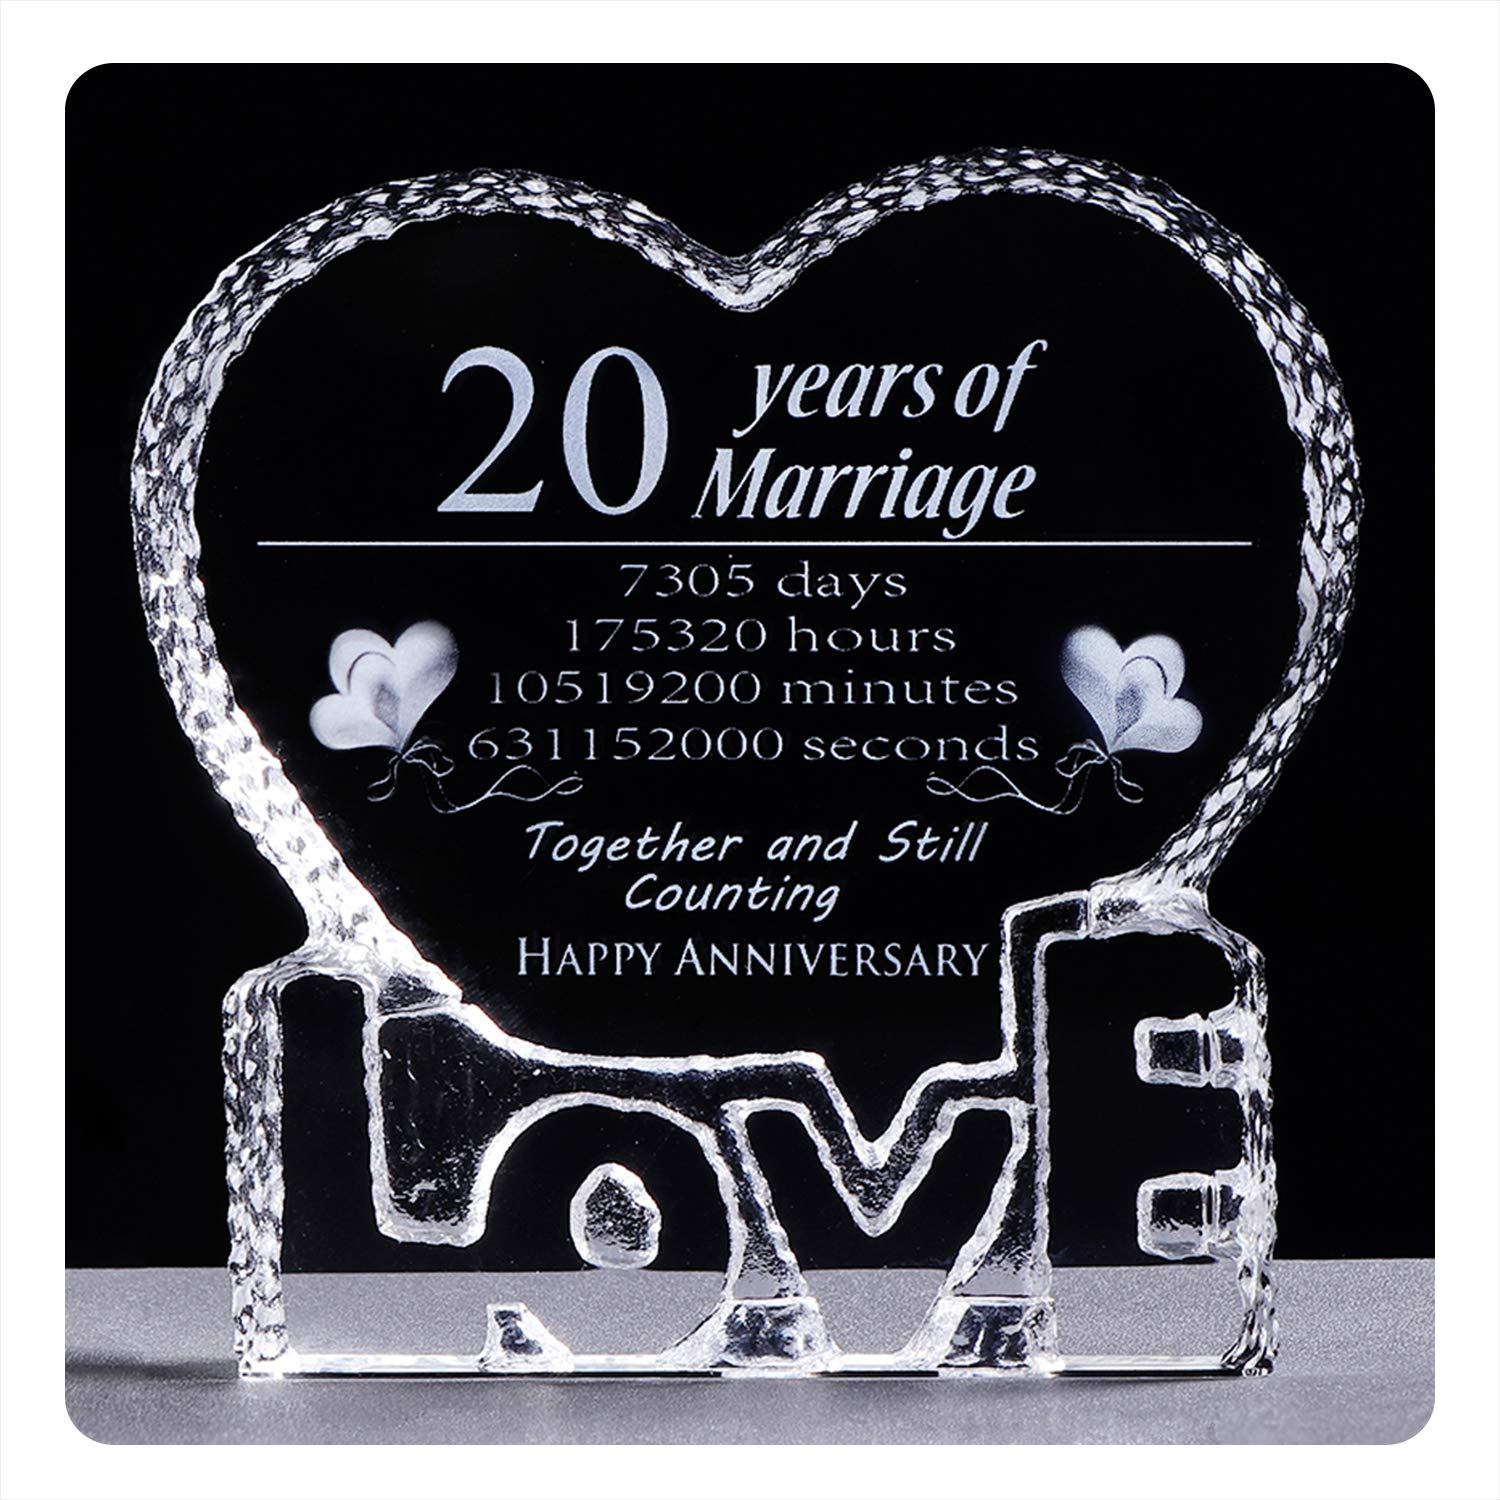 YWHL 20 Year 20th Wedding Anniversary Crystal Sculpture Keepsake Gifts for Her Wife Girlfriend Him Husband (20th Year) by YWHL